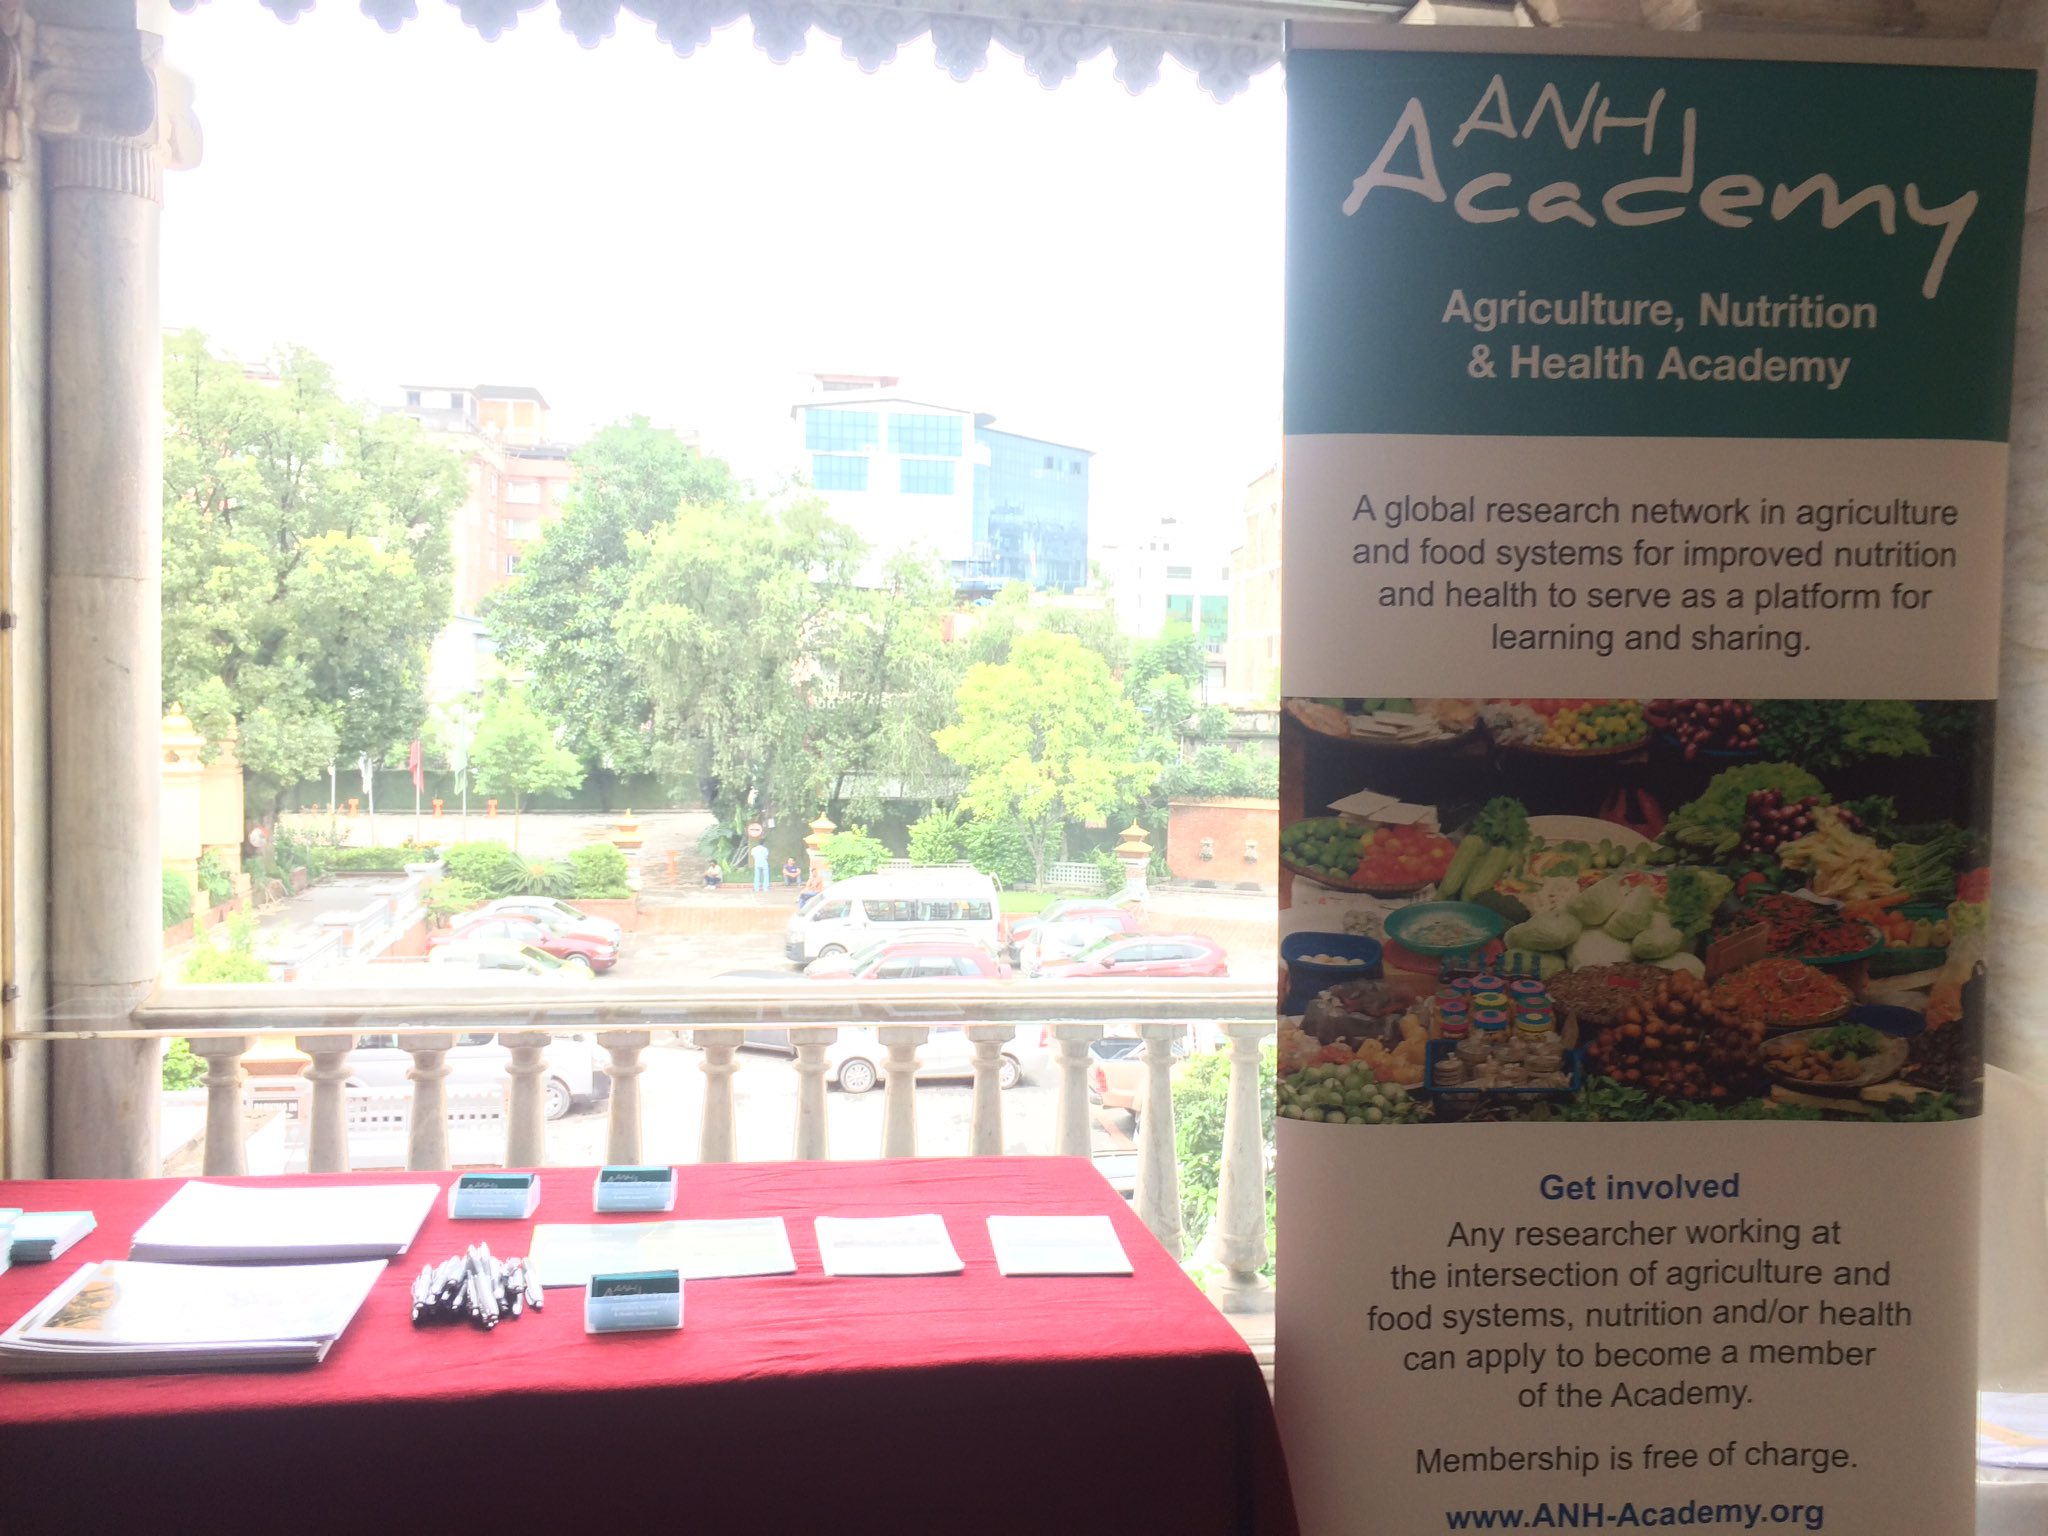 Visit our booth at #ANH2017 #agnutsympo to find out what we do & join #ANHAcademy for free! https://t.co/vNjsJn46gZ